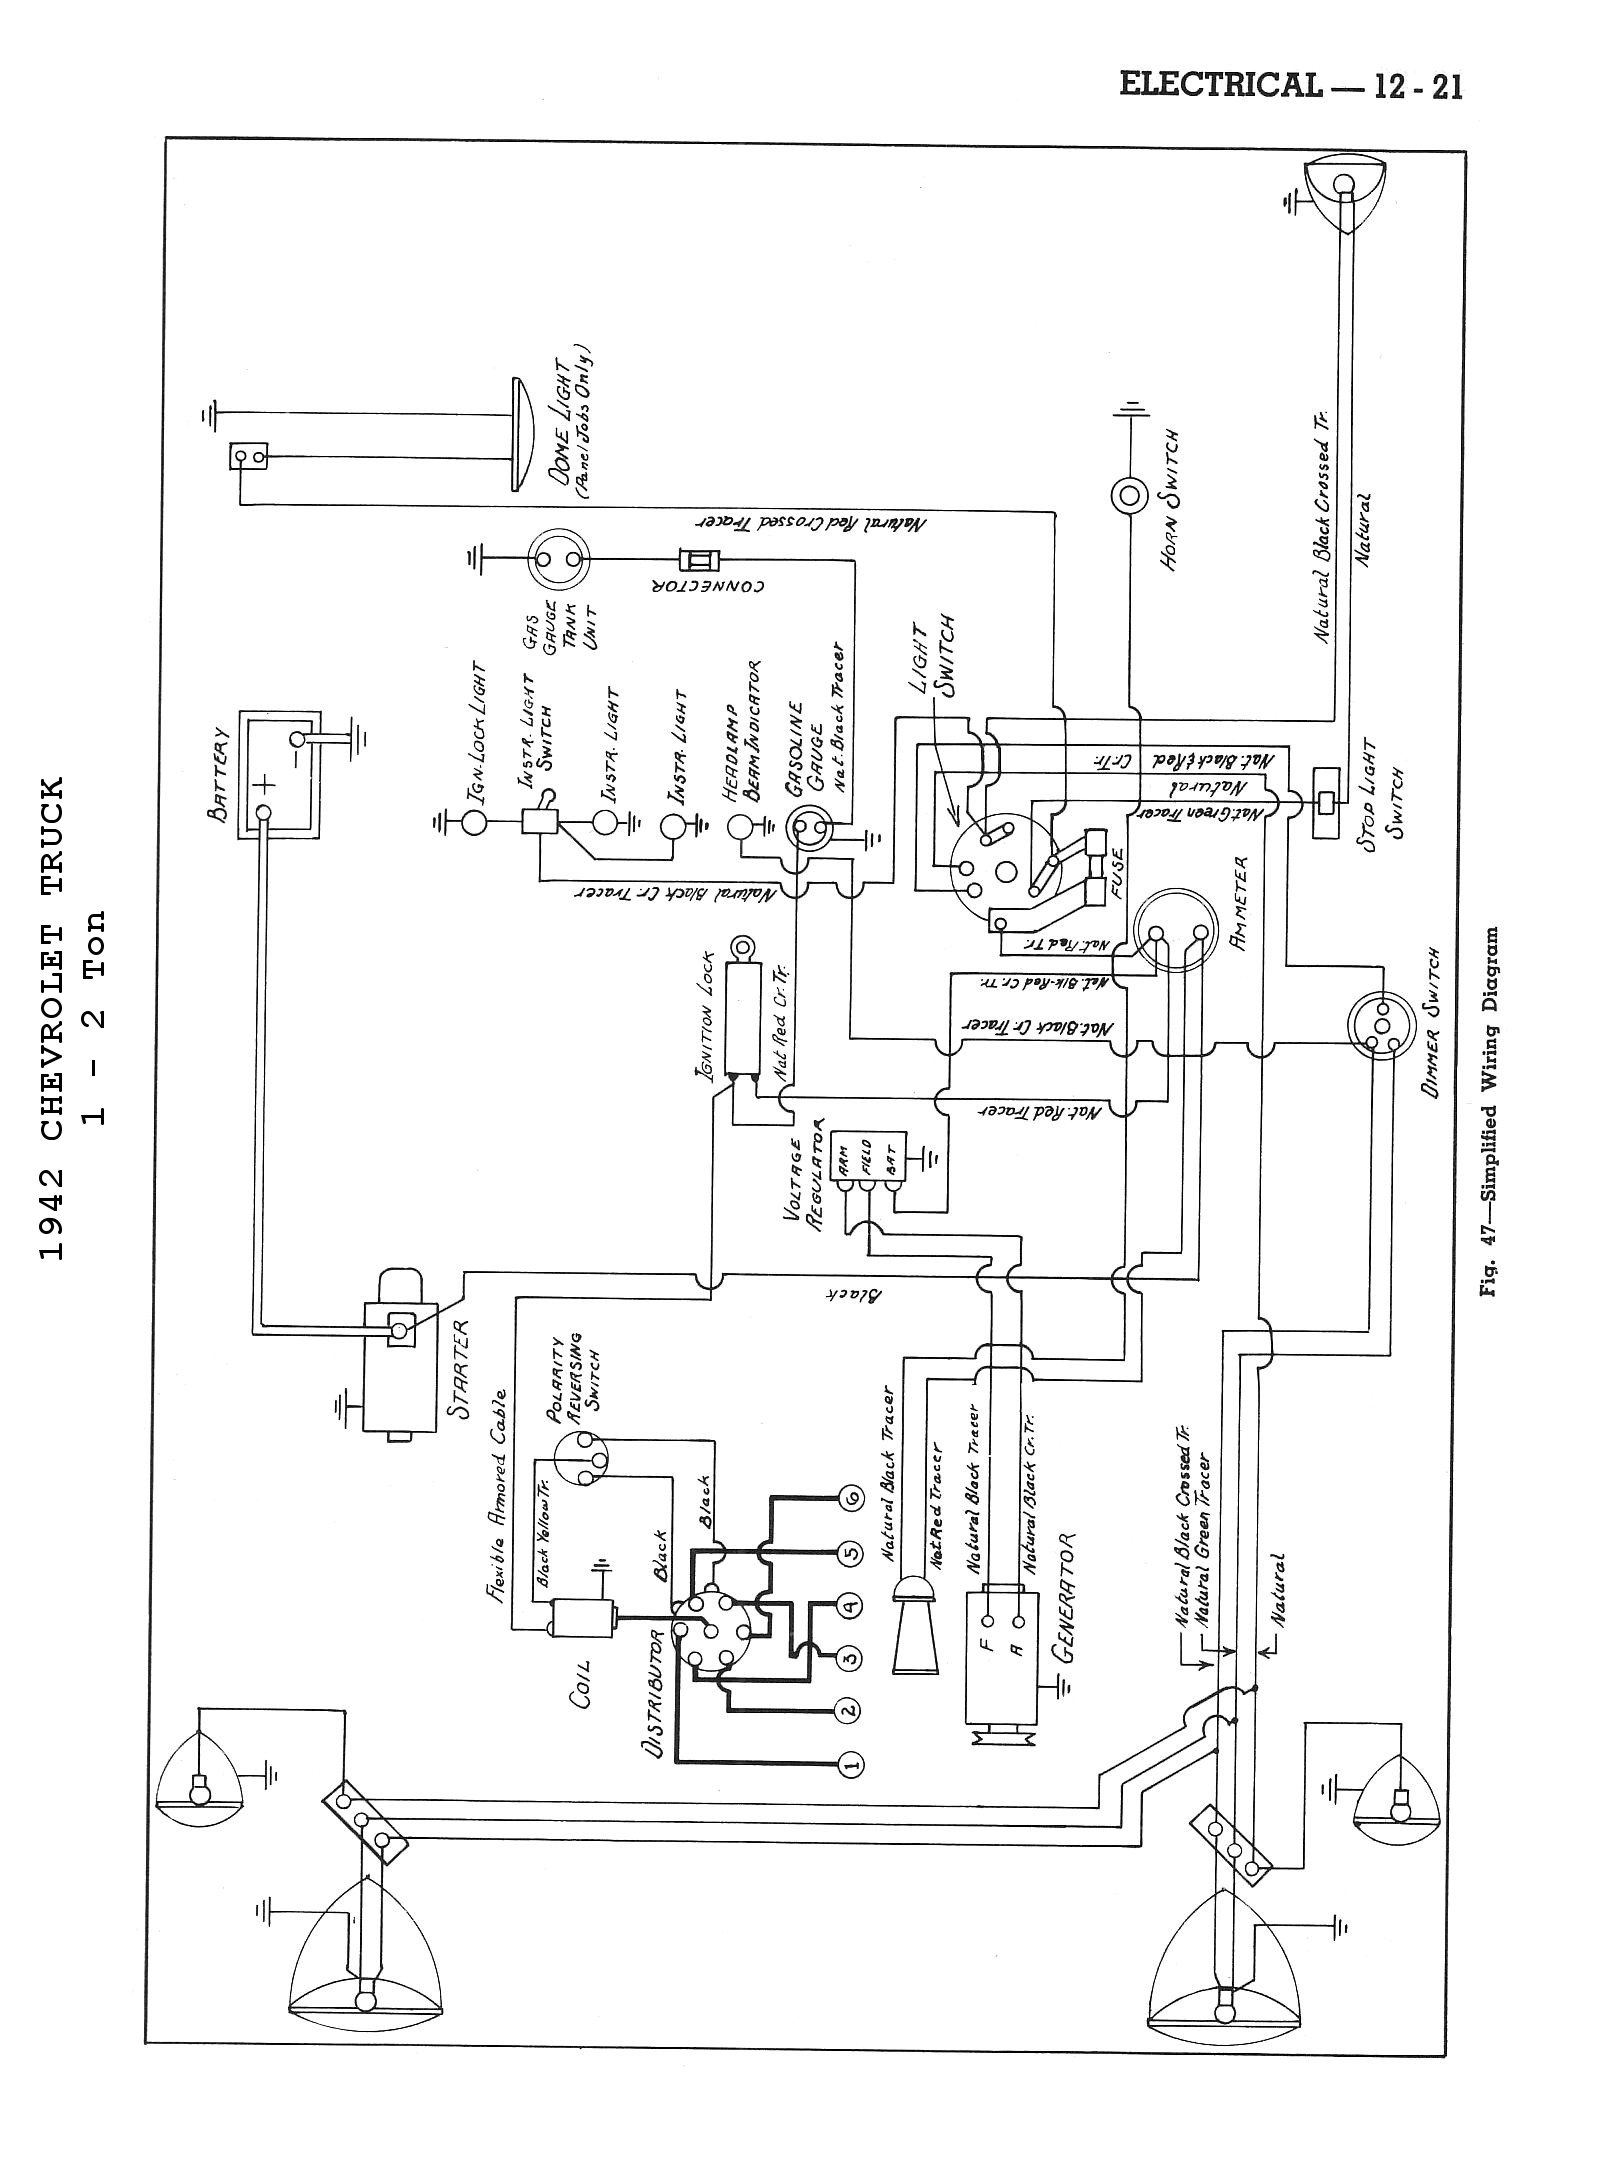 hight resolution of wiring diagram for a 1937 chevy truck wiring diagram mega 38 chevy truck wire diagram